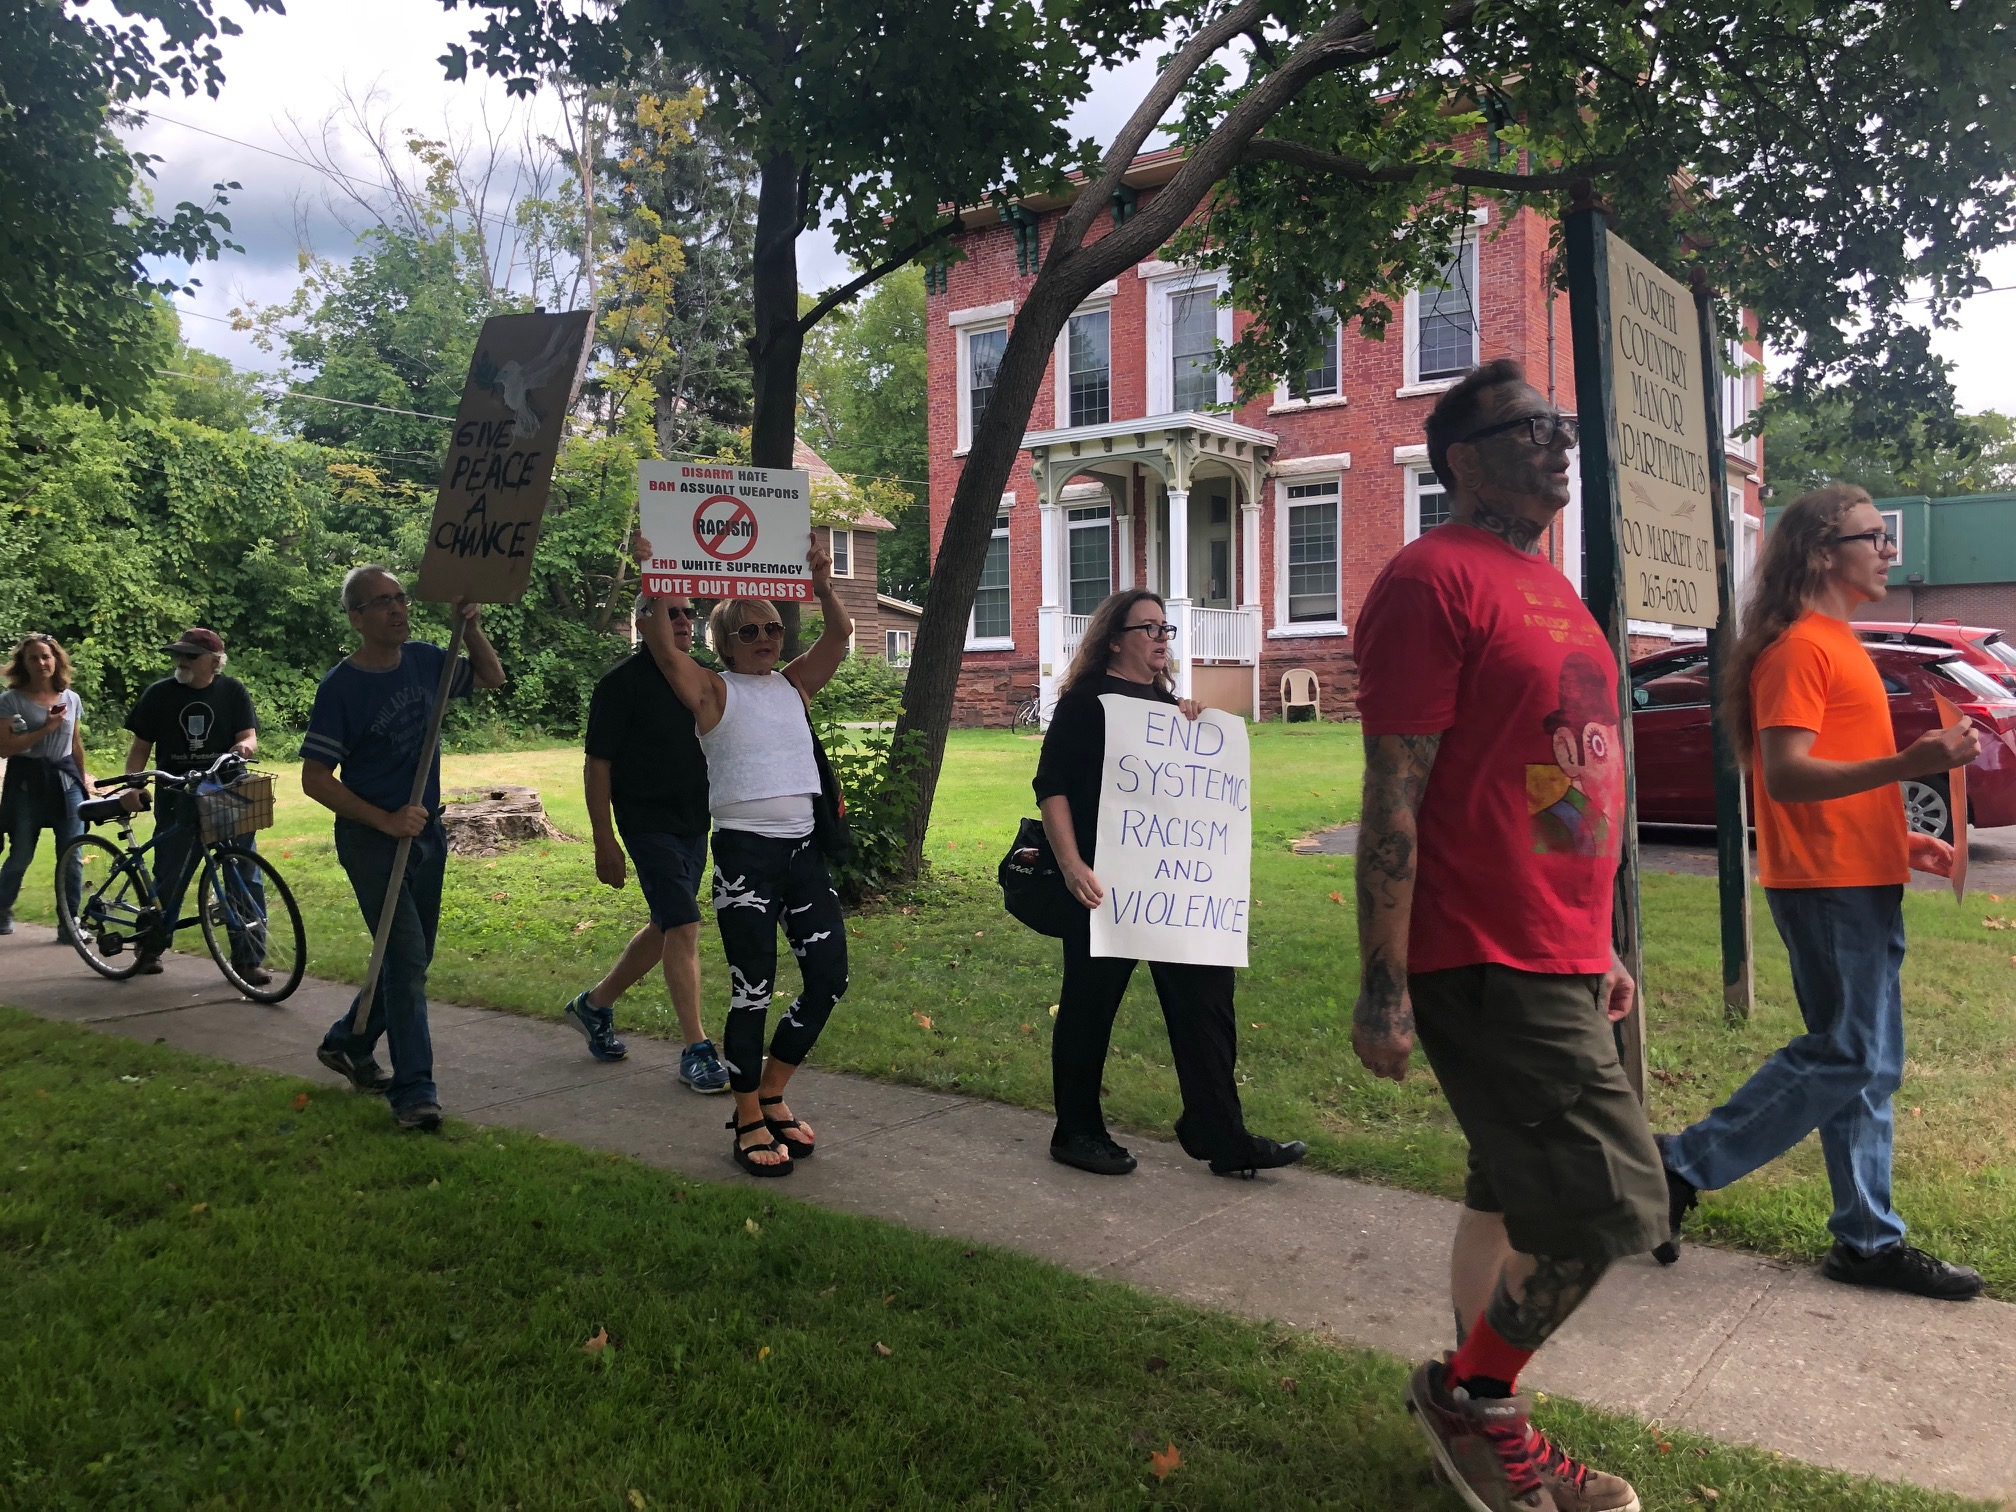 """Demonstrators in Potsdam's """"March against Racism"""" pass 100 Market St., the former home of Garrett Phillips, whose 2011 murder—and the subsequent trial of Oral """"Nick"""" Hillary as the prime suspect—intensified racial tensions in the majority-white community."""